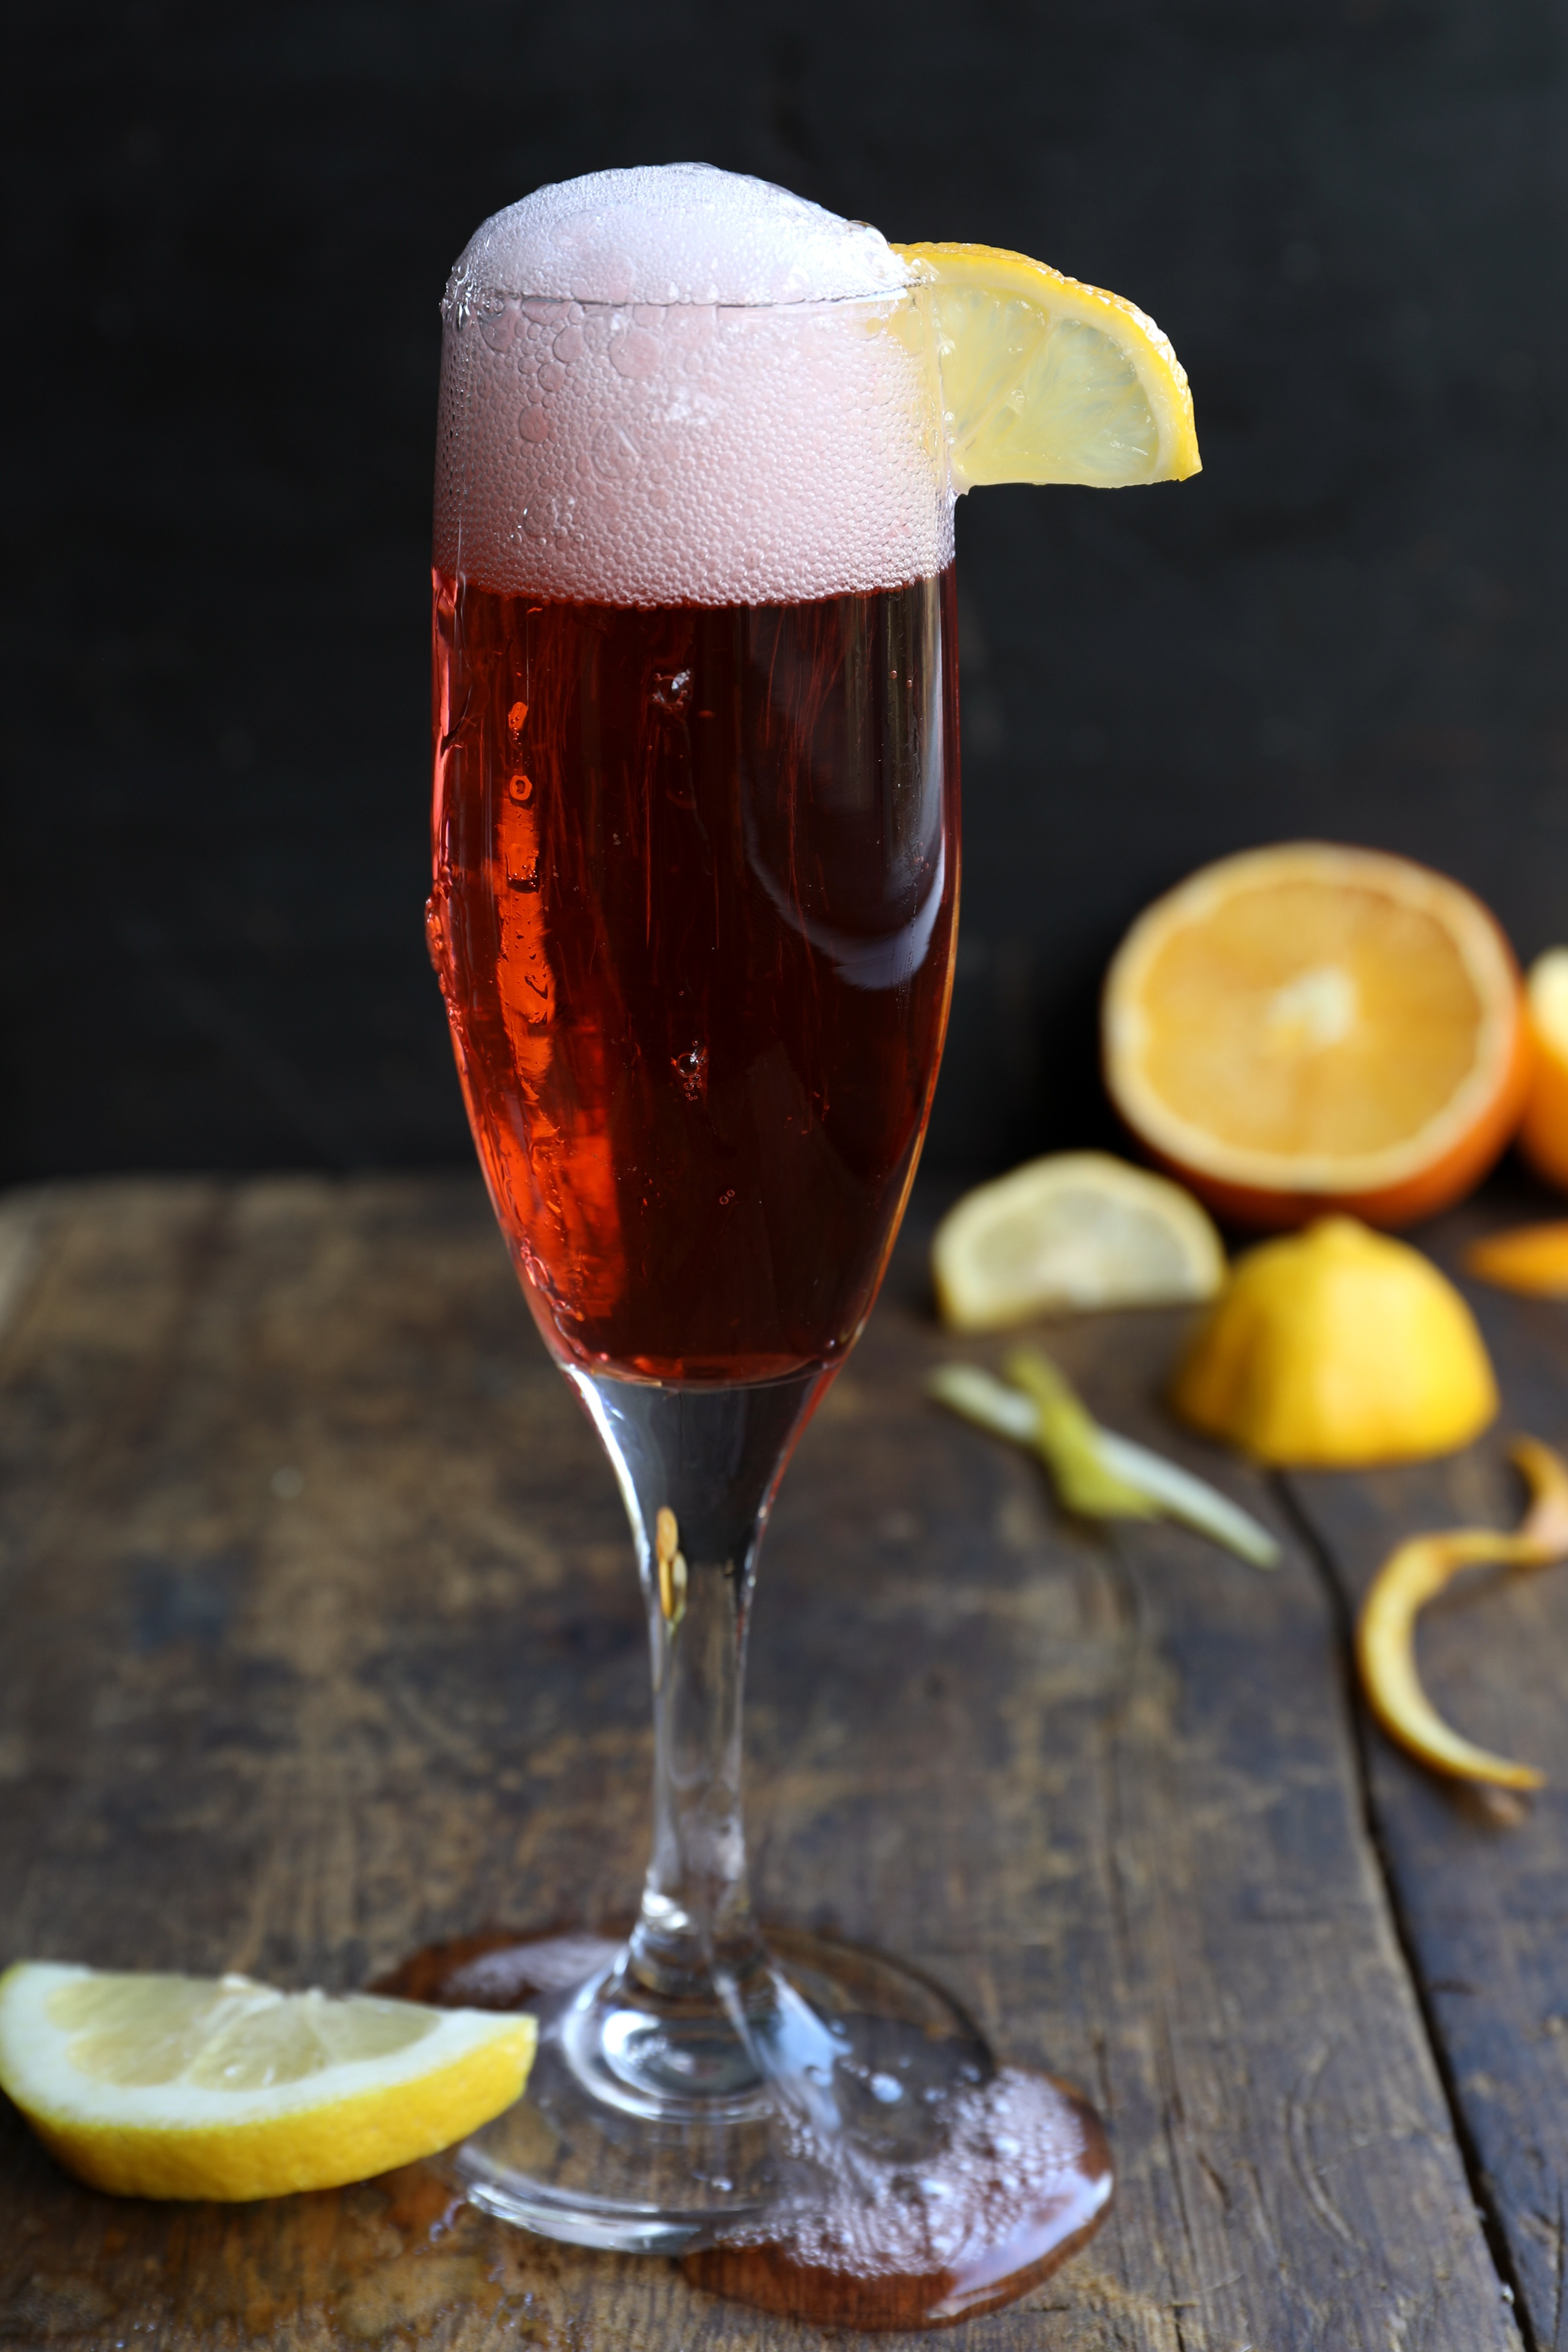 Red champagne drink with bubbly top, made with campari, vermouth, and organic gin